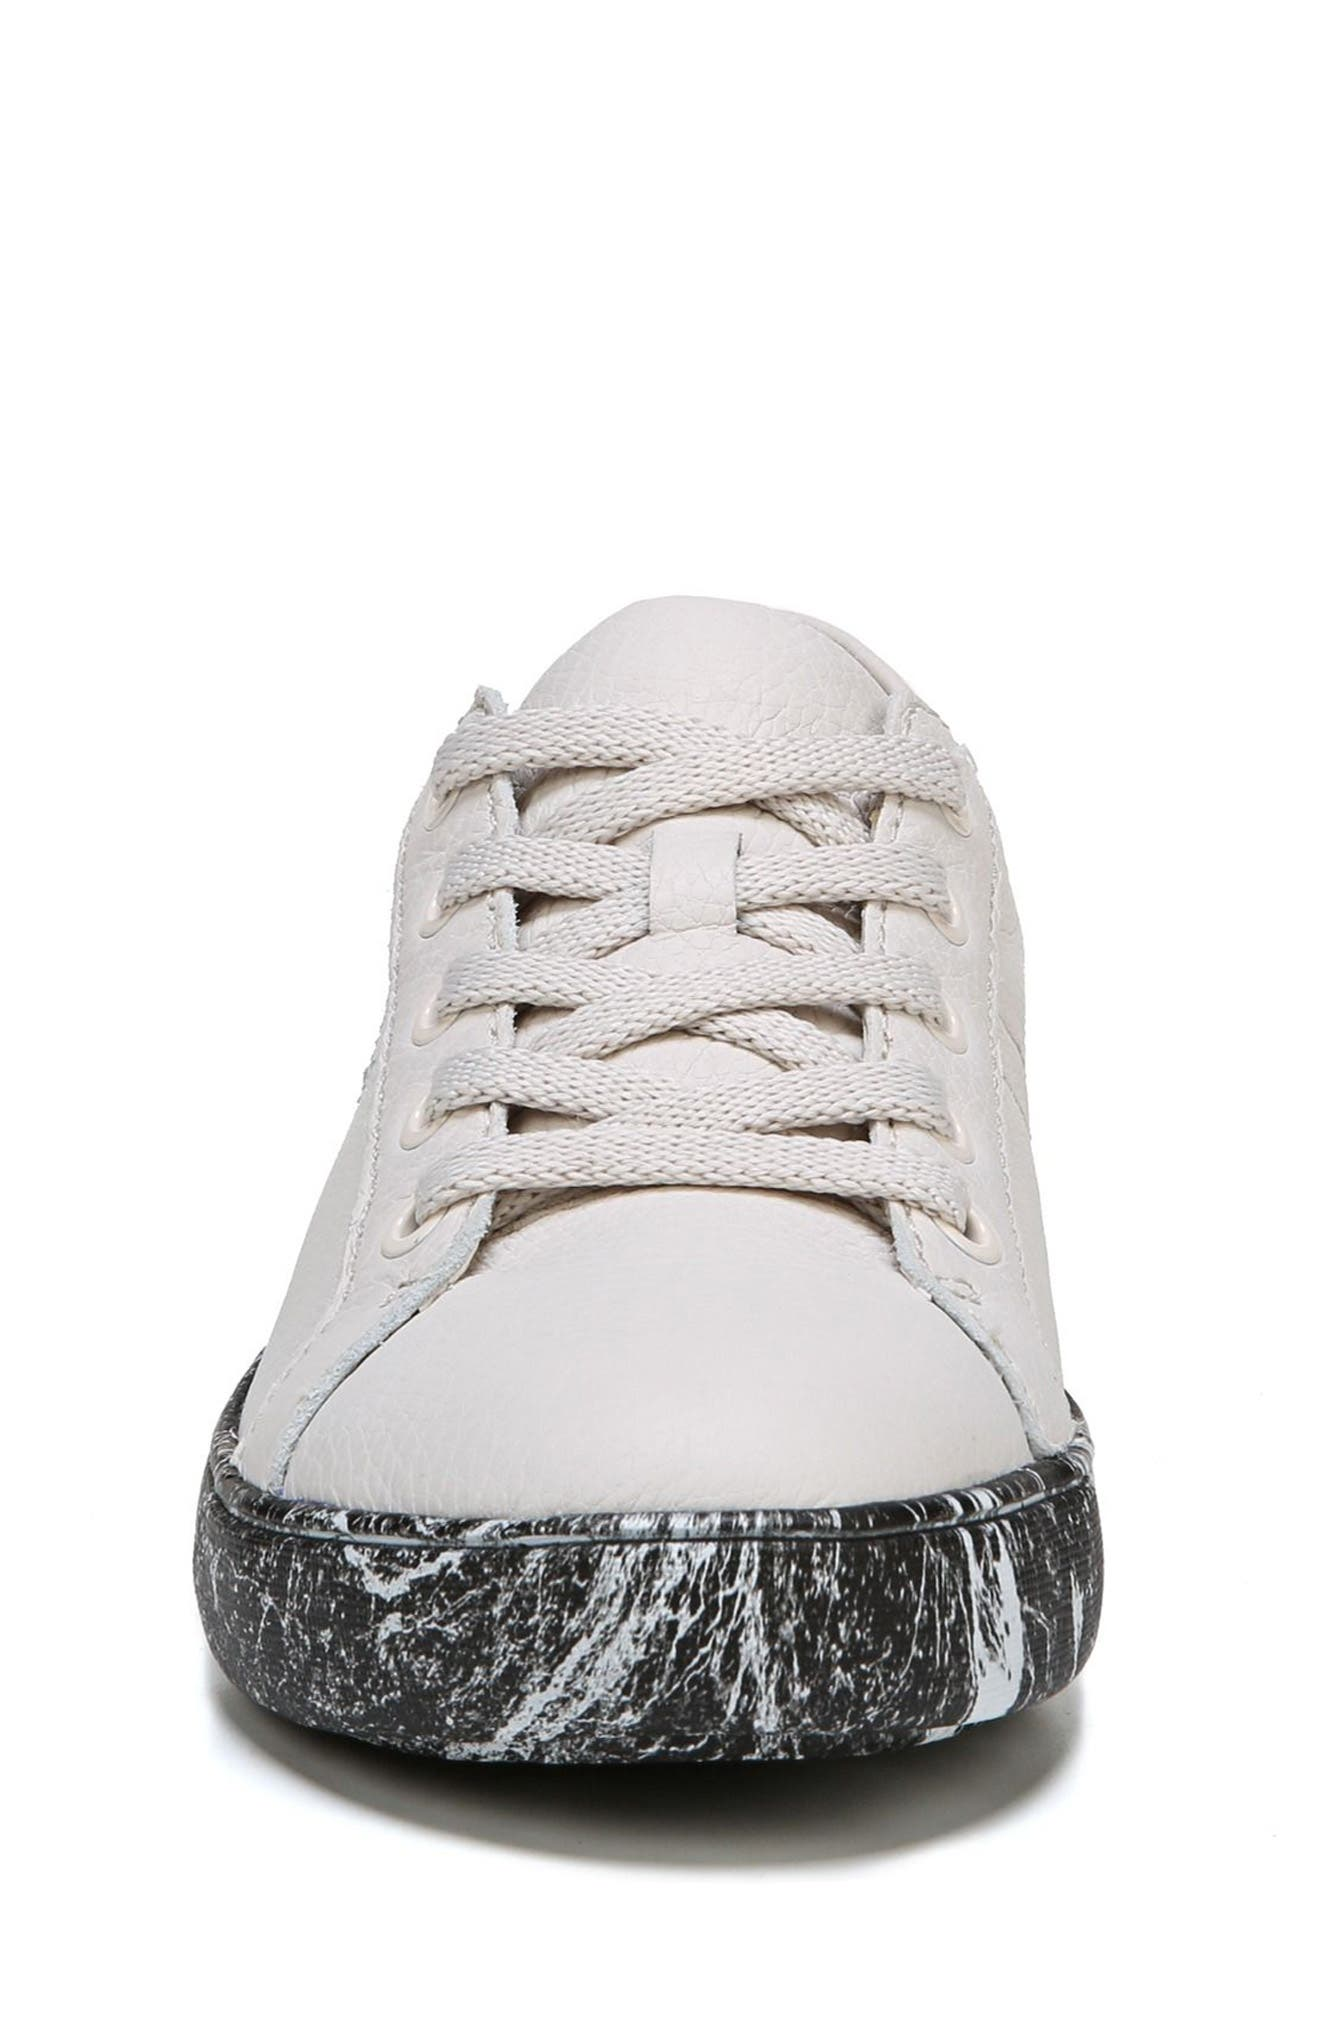 Morrison Sneaker,                             Alternate thumbnail 4, color,                             BEIGE PEBBLE LEATHER